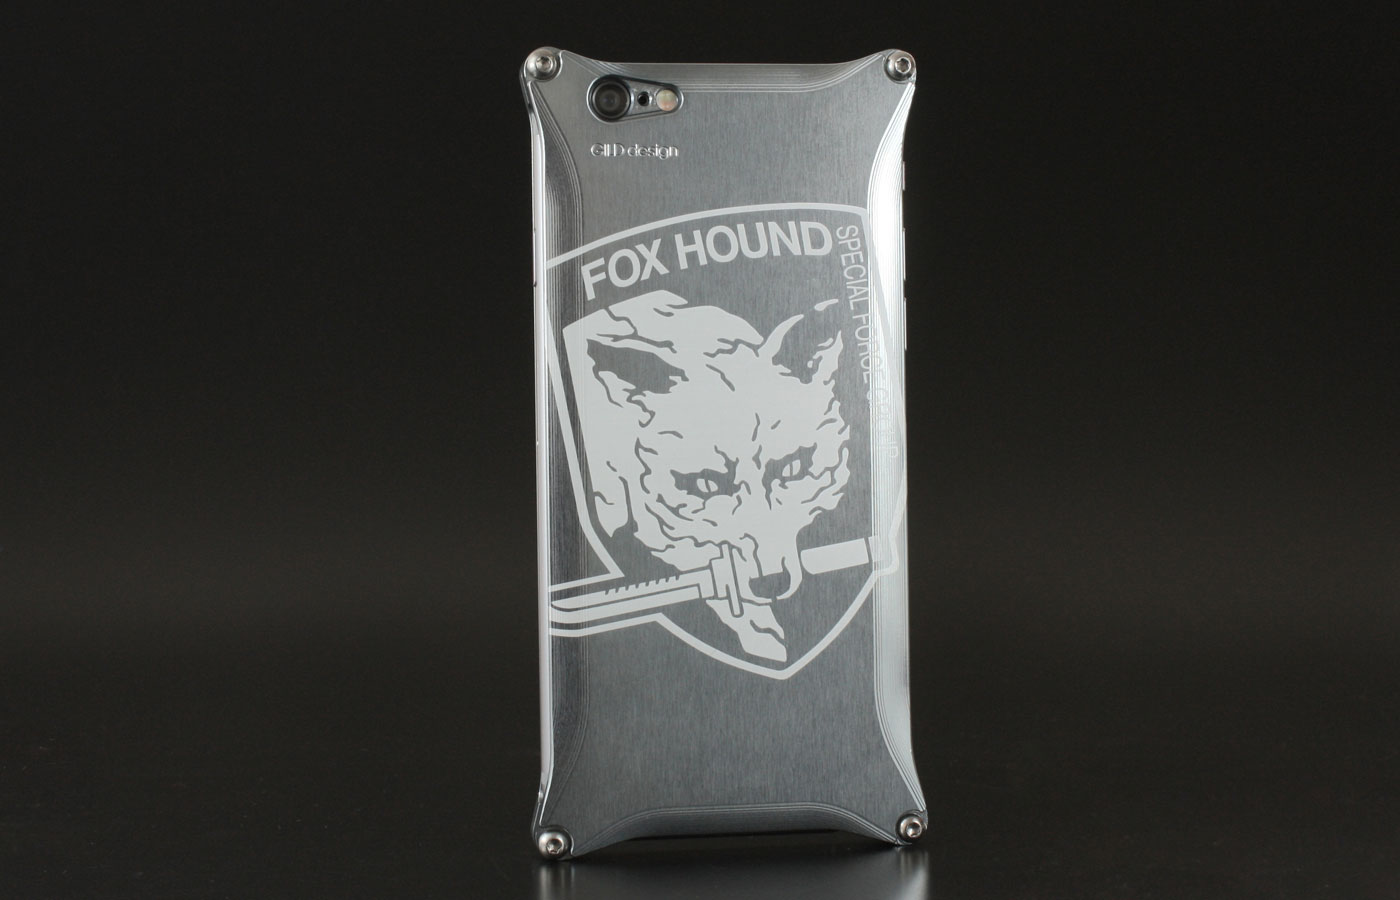 MGS-Gild-Design-iPhone-case-Foxhound